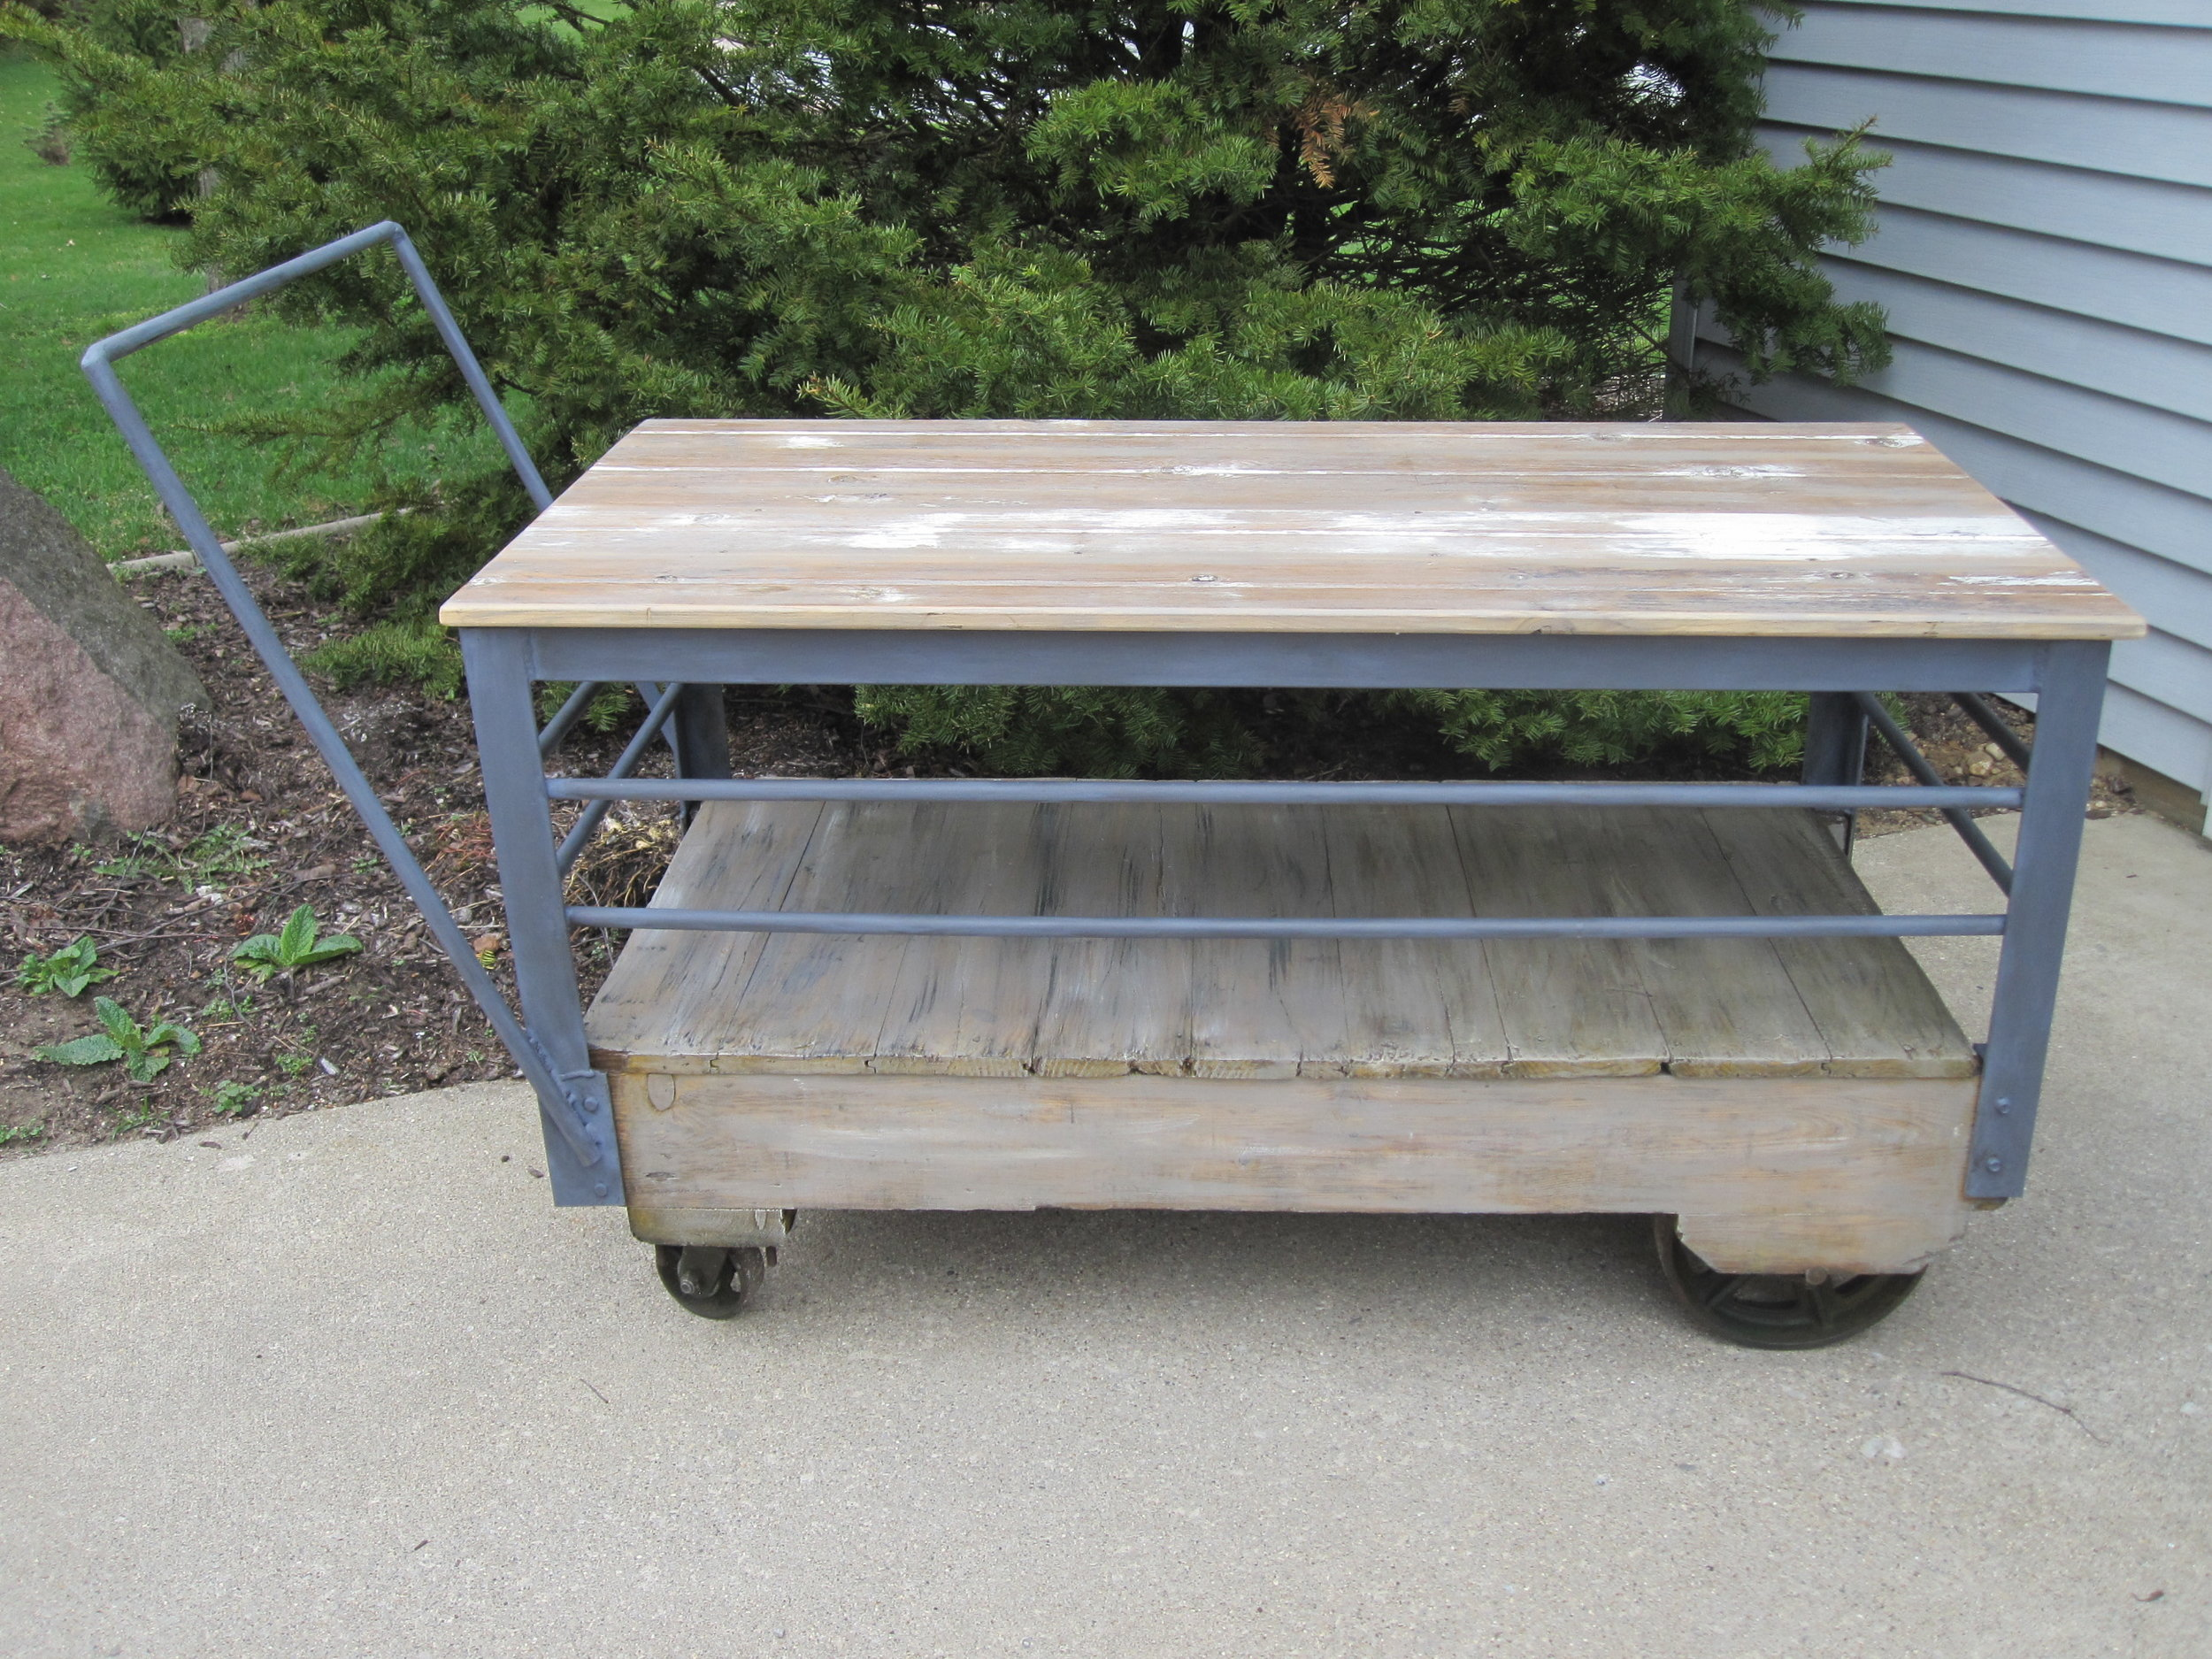 Industrial Cart - Description ~ wood and gray metal industrial cart. Great for gifts, beverage service or other displays. On wheels so easy to move!Quantity ~ 1Rental Price ~ $35